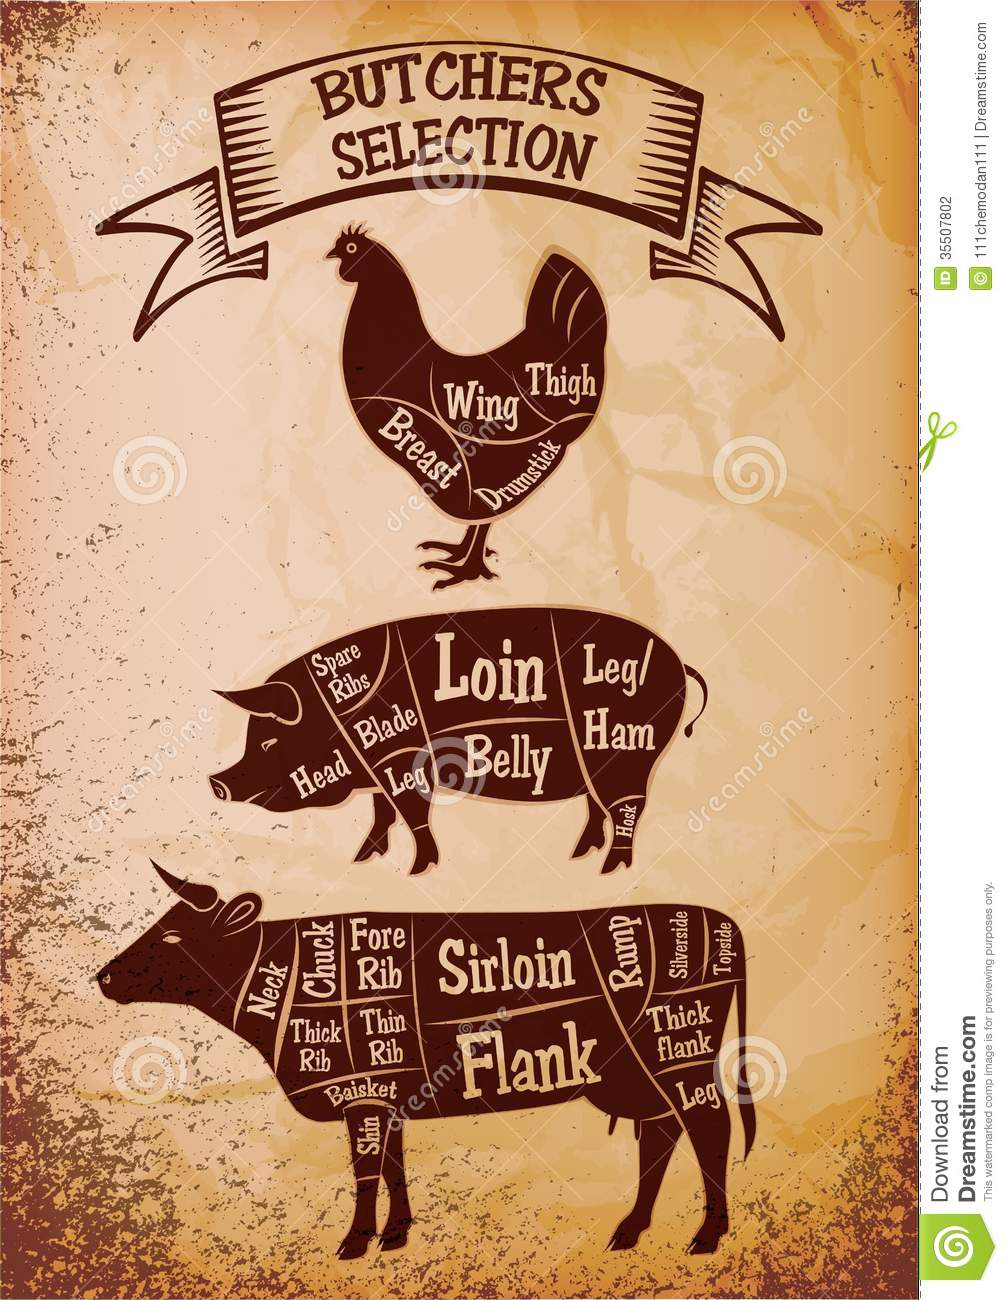 cow meat diagram 1990 crx radio wiring butchers selection stock vector. illustration of beef - 35507802